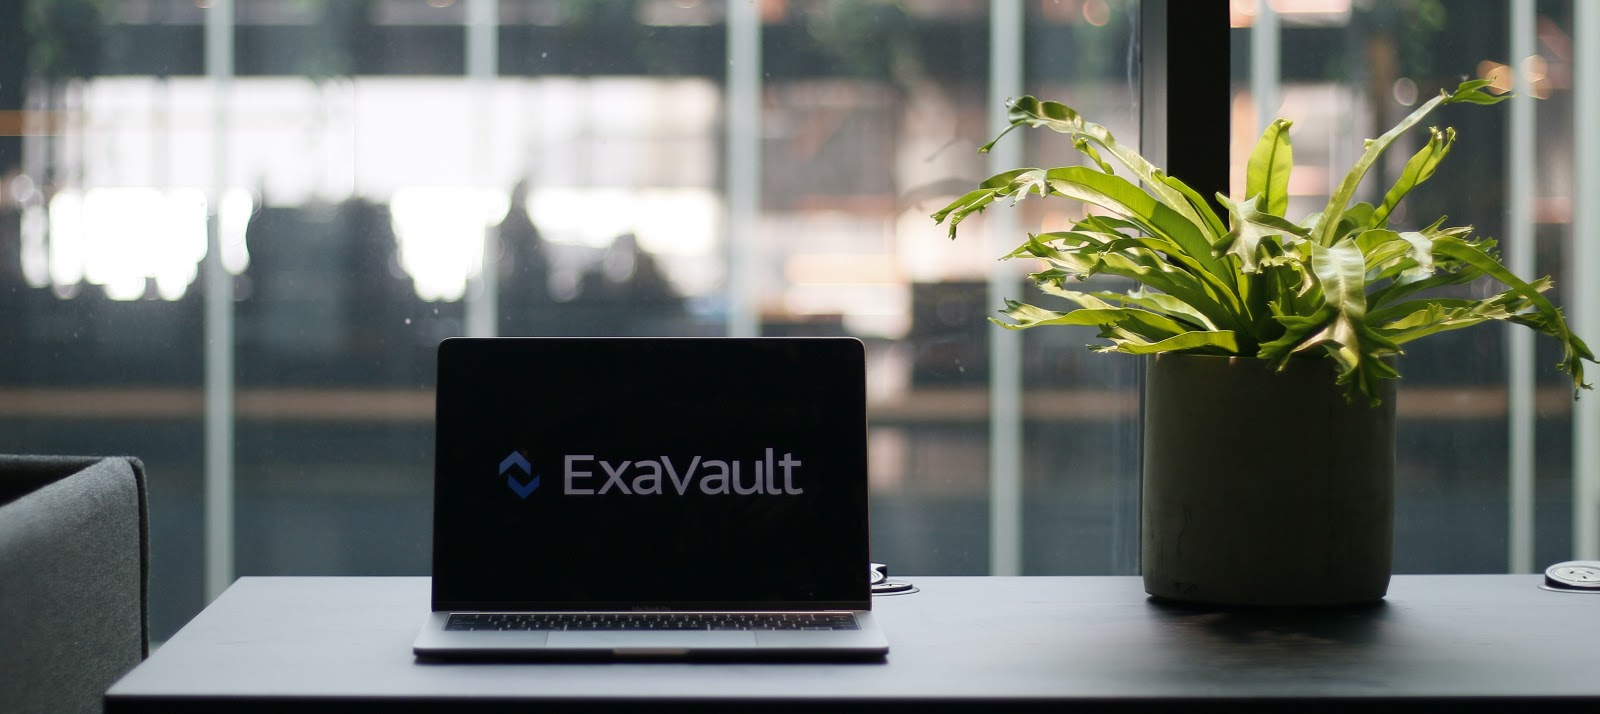 Laptop with logo for ExaVault FTP service.